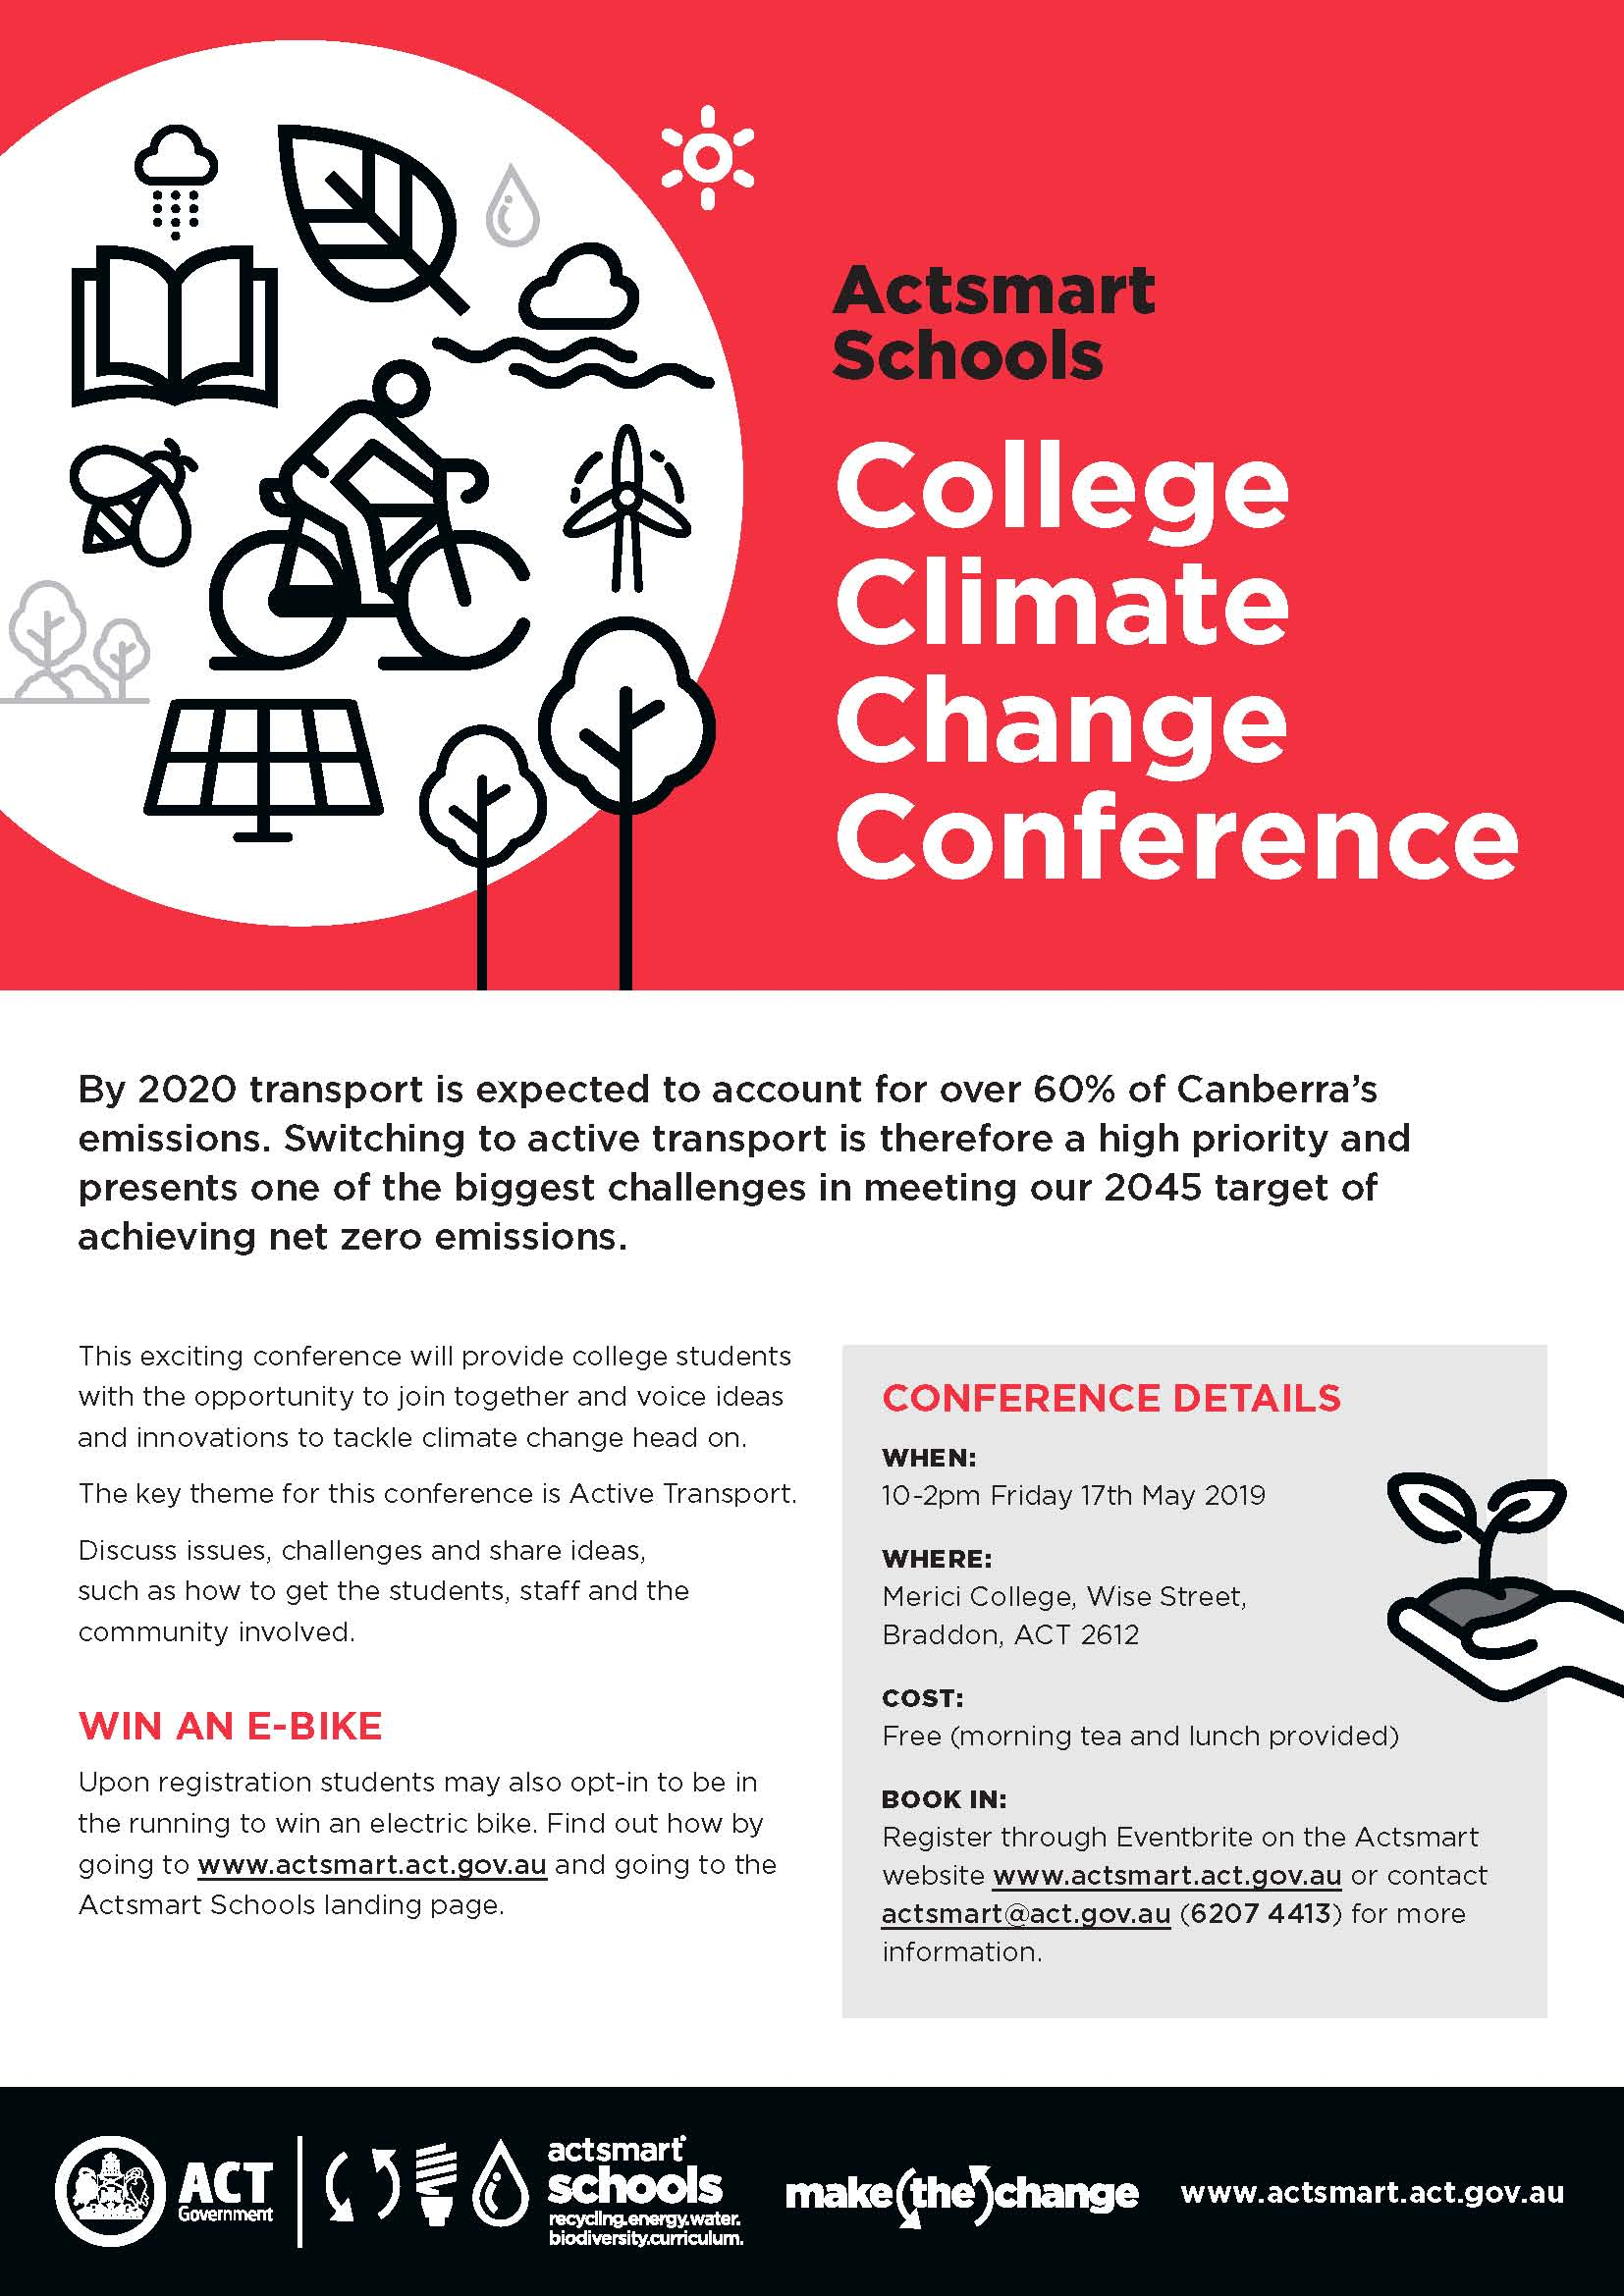 College Climate Change Conference